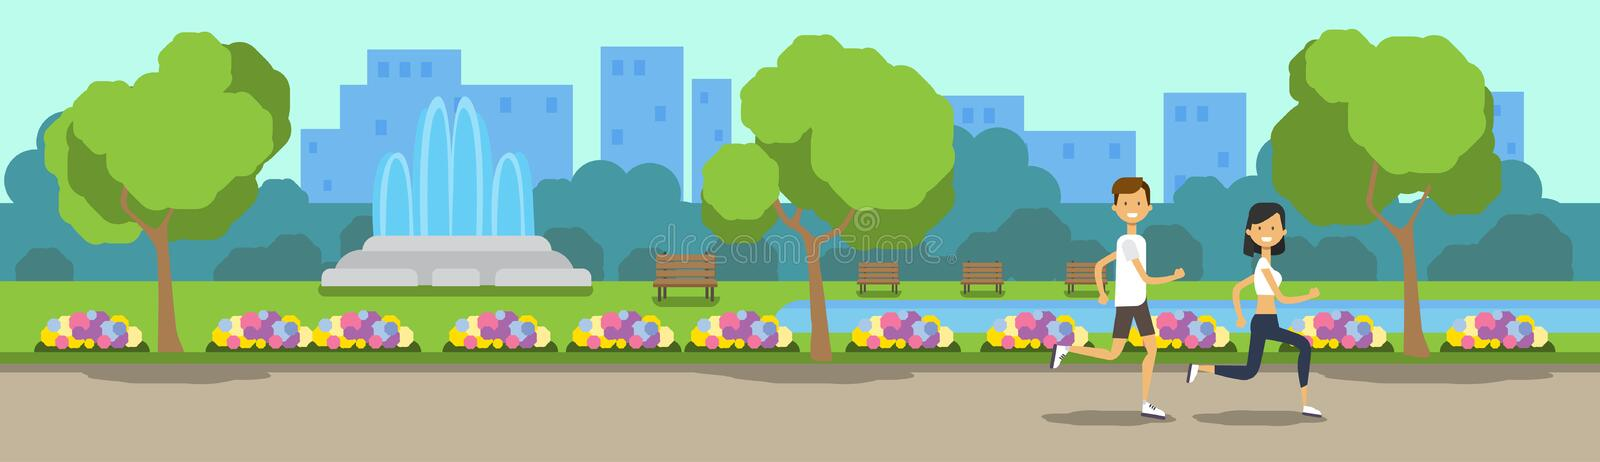 City park man woman activities running green lawn flowers fountain trees cityscape template background banner flat. Vector illustration stock illustration